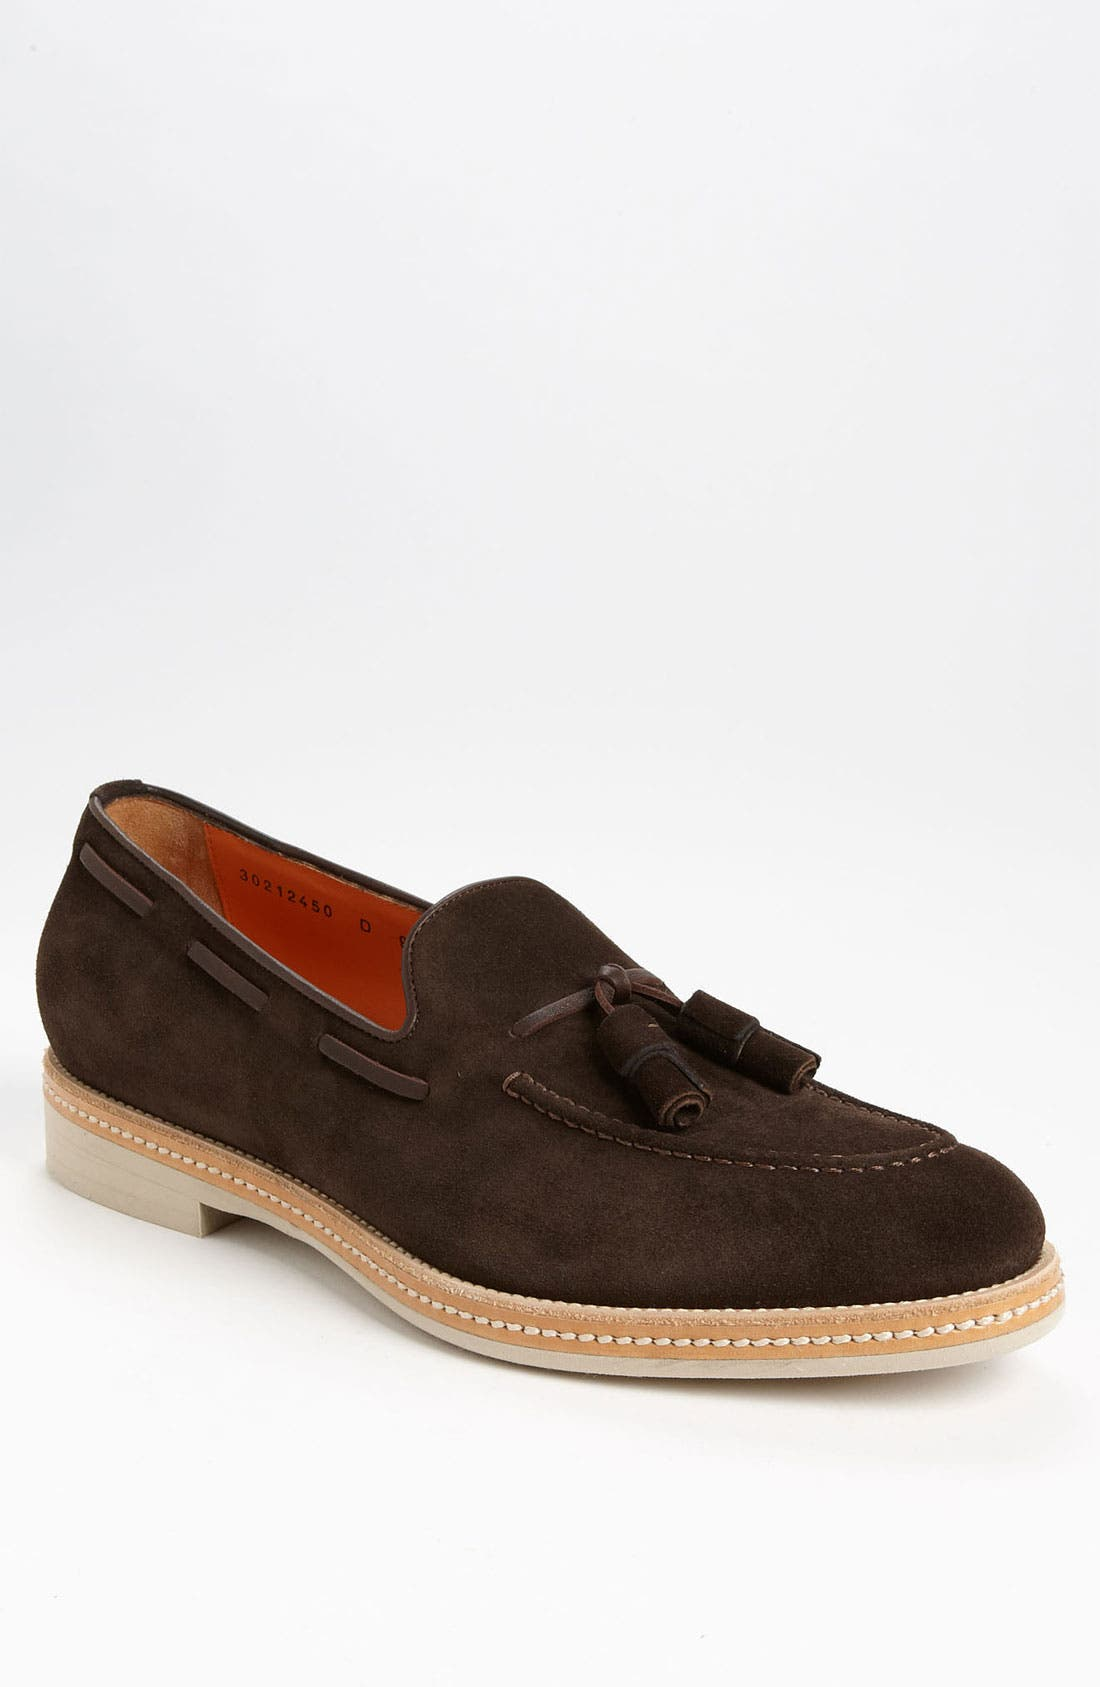 Main Image - Santoni 'Terry' Tassel Loafer